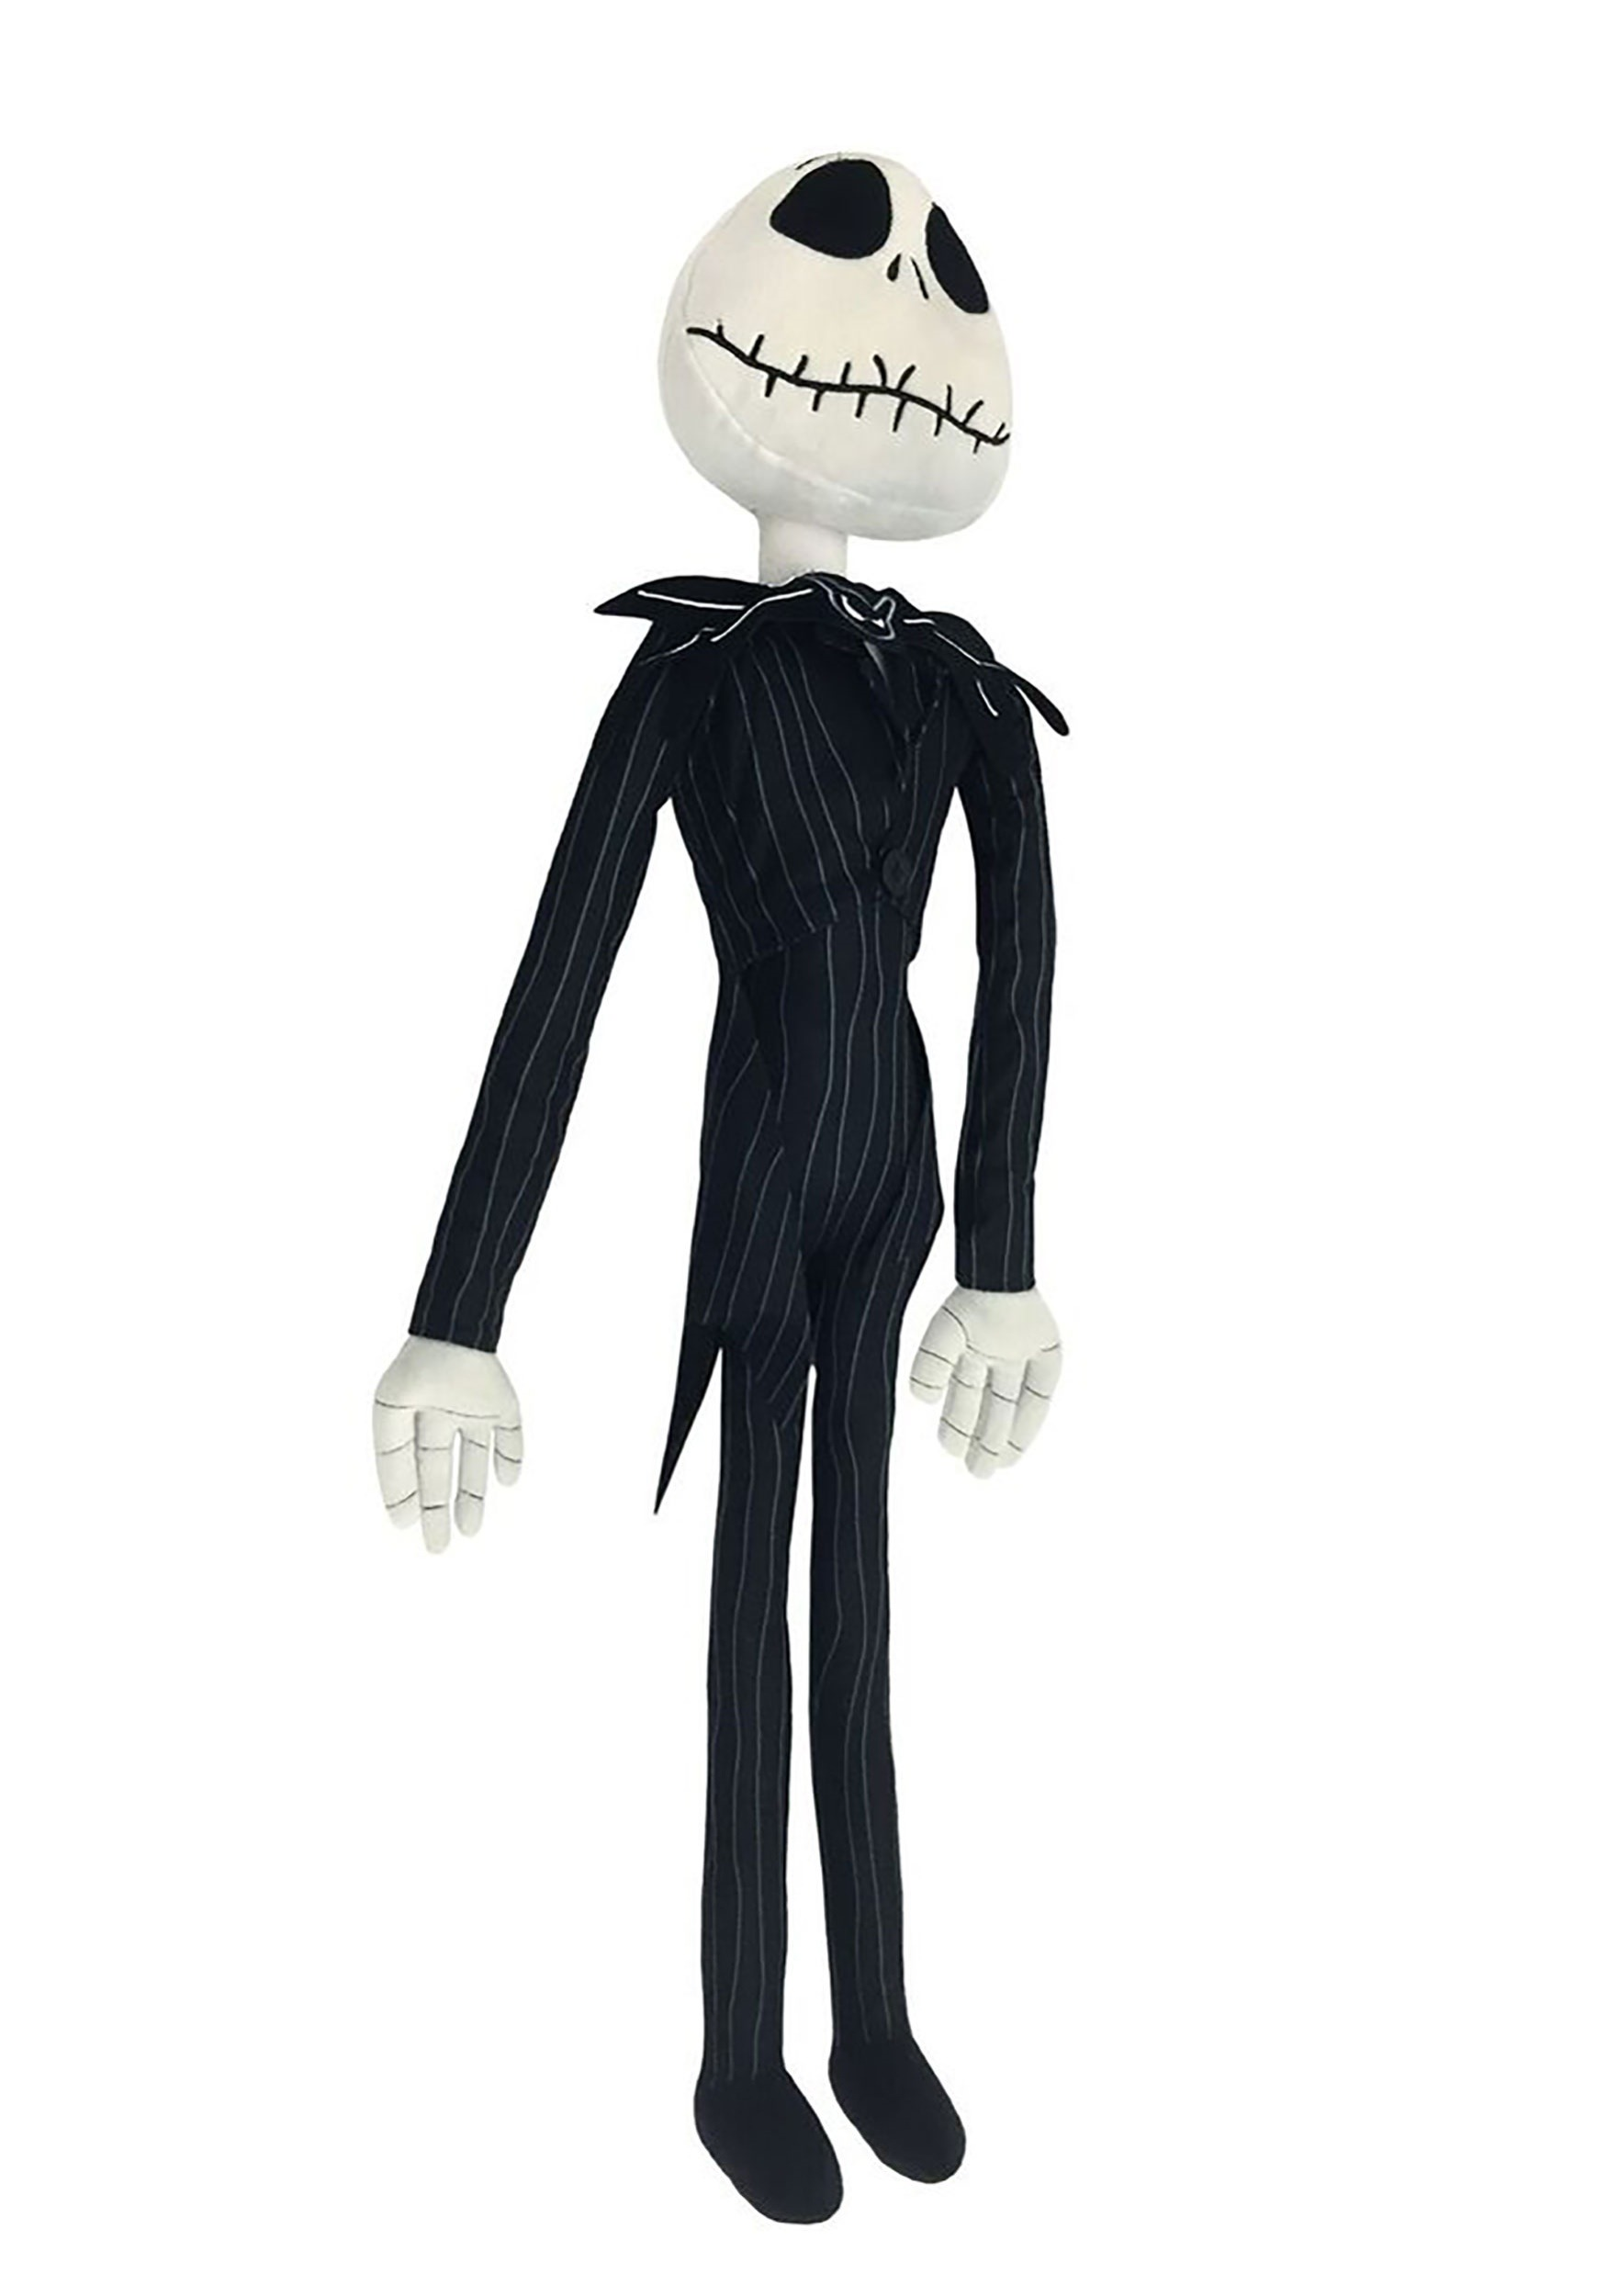 nightmare before christmas jack skellington stuffed doll - Jack From Nightmare Before Christmas